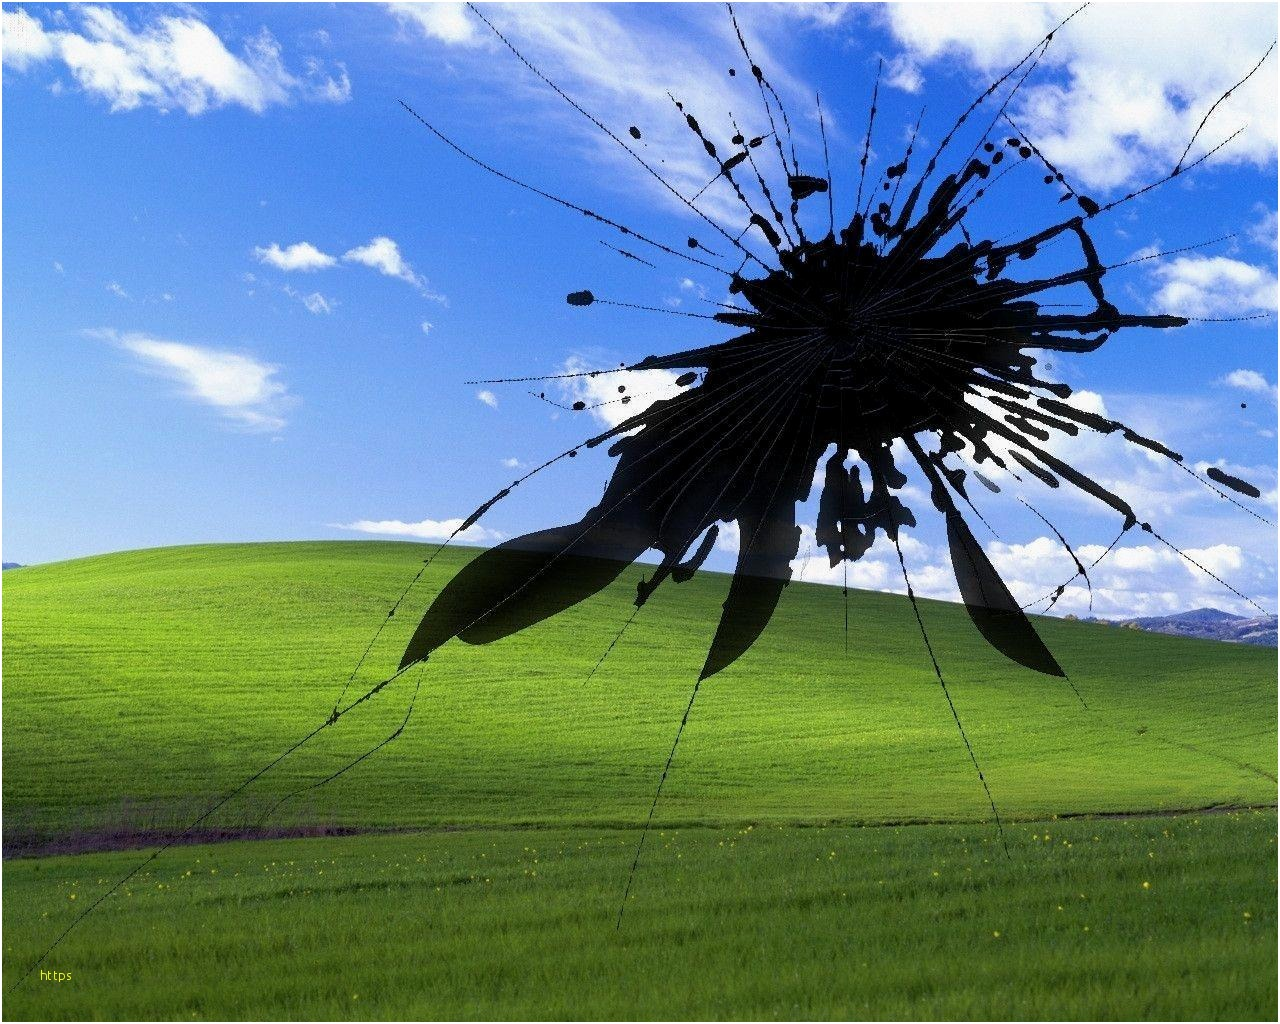 Windows Xp Wallpaper Luxury Window Xp Wallpapers Wallpaper 1280x1024